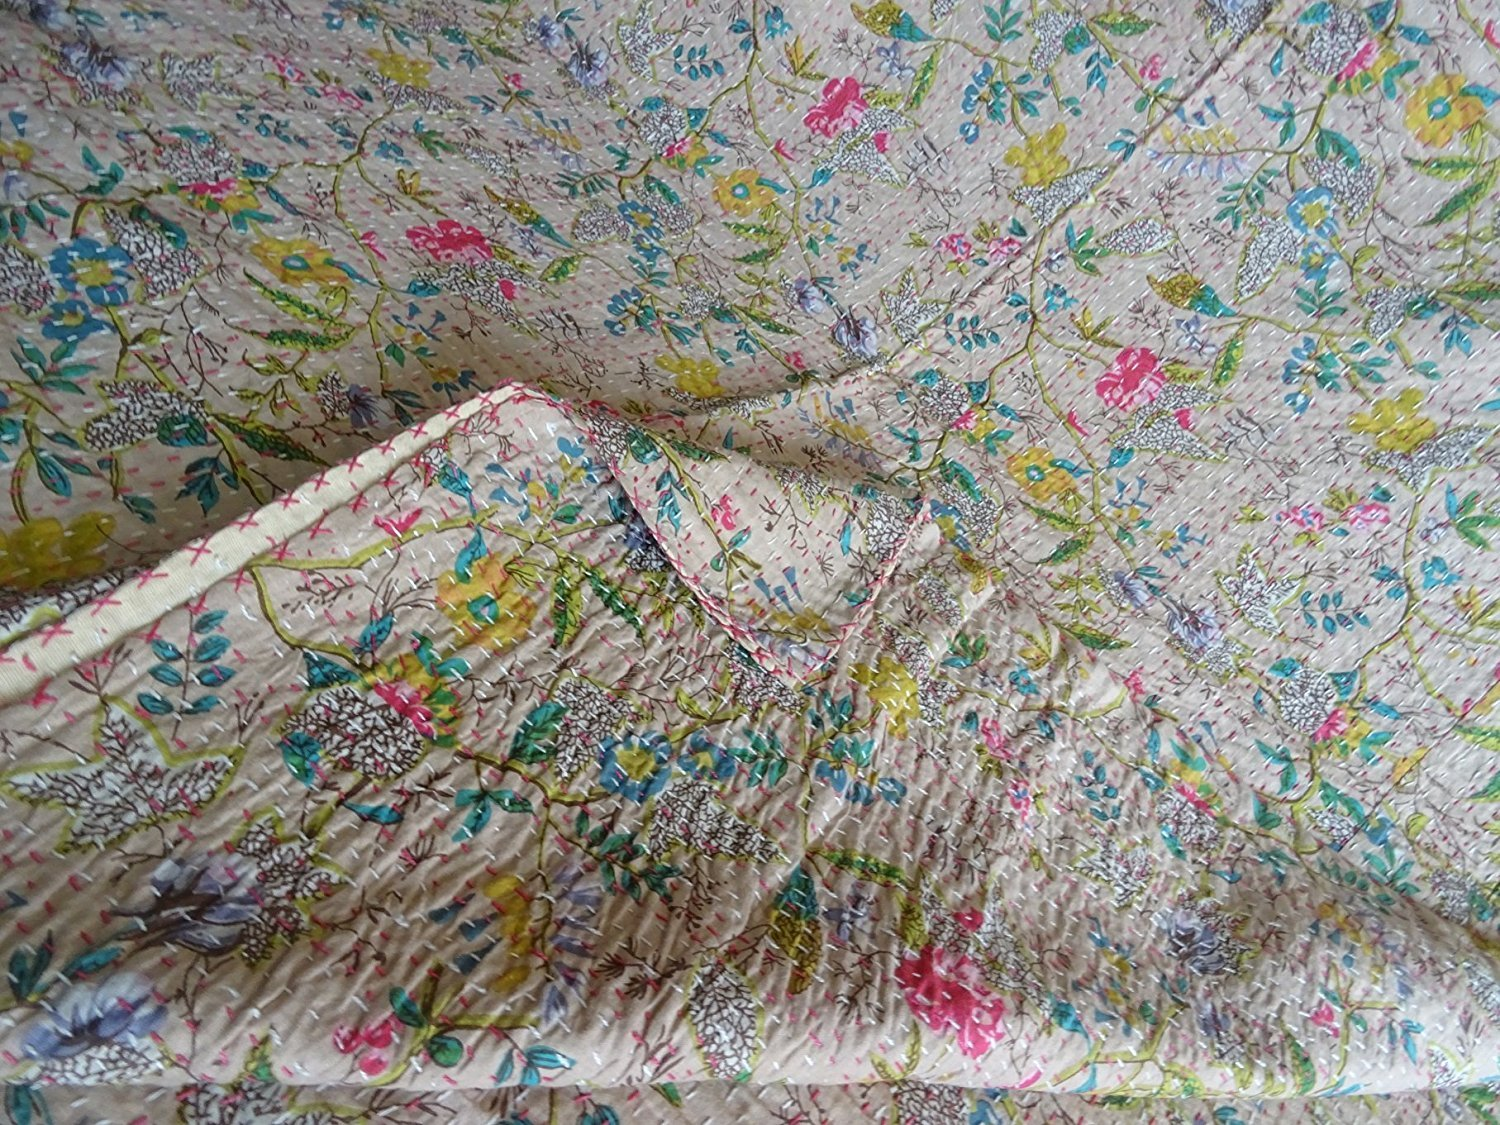 Indian Multicolor Paisley PARADISE Print King Size Kantha Quilt , Kantha Blanket, Bed Cover, King Kantha bedspread, Bohemian Bedding Kantha (Begie) by Sophia Art (Image #3)